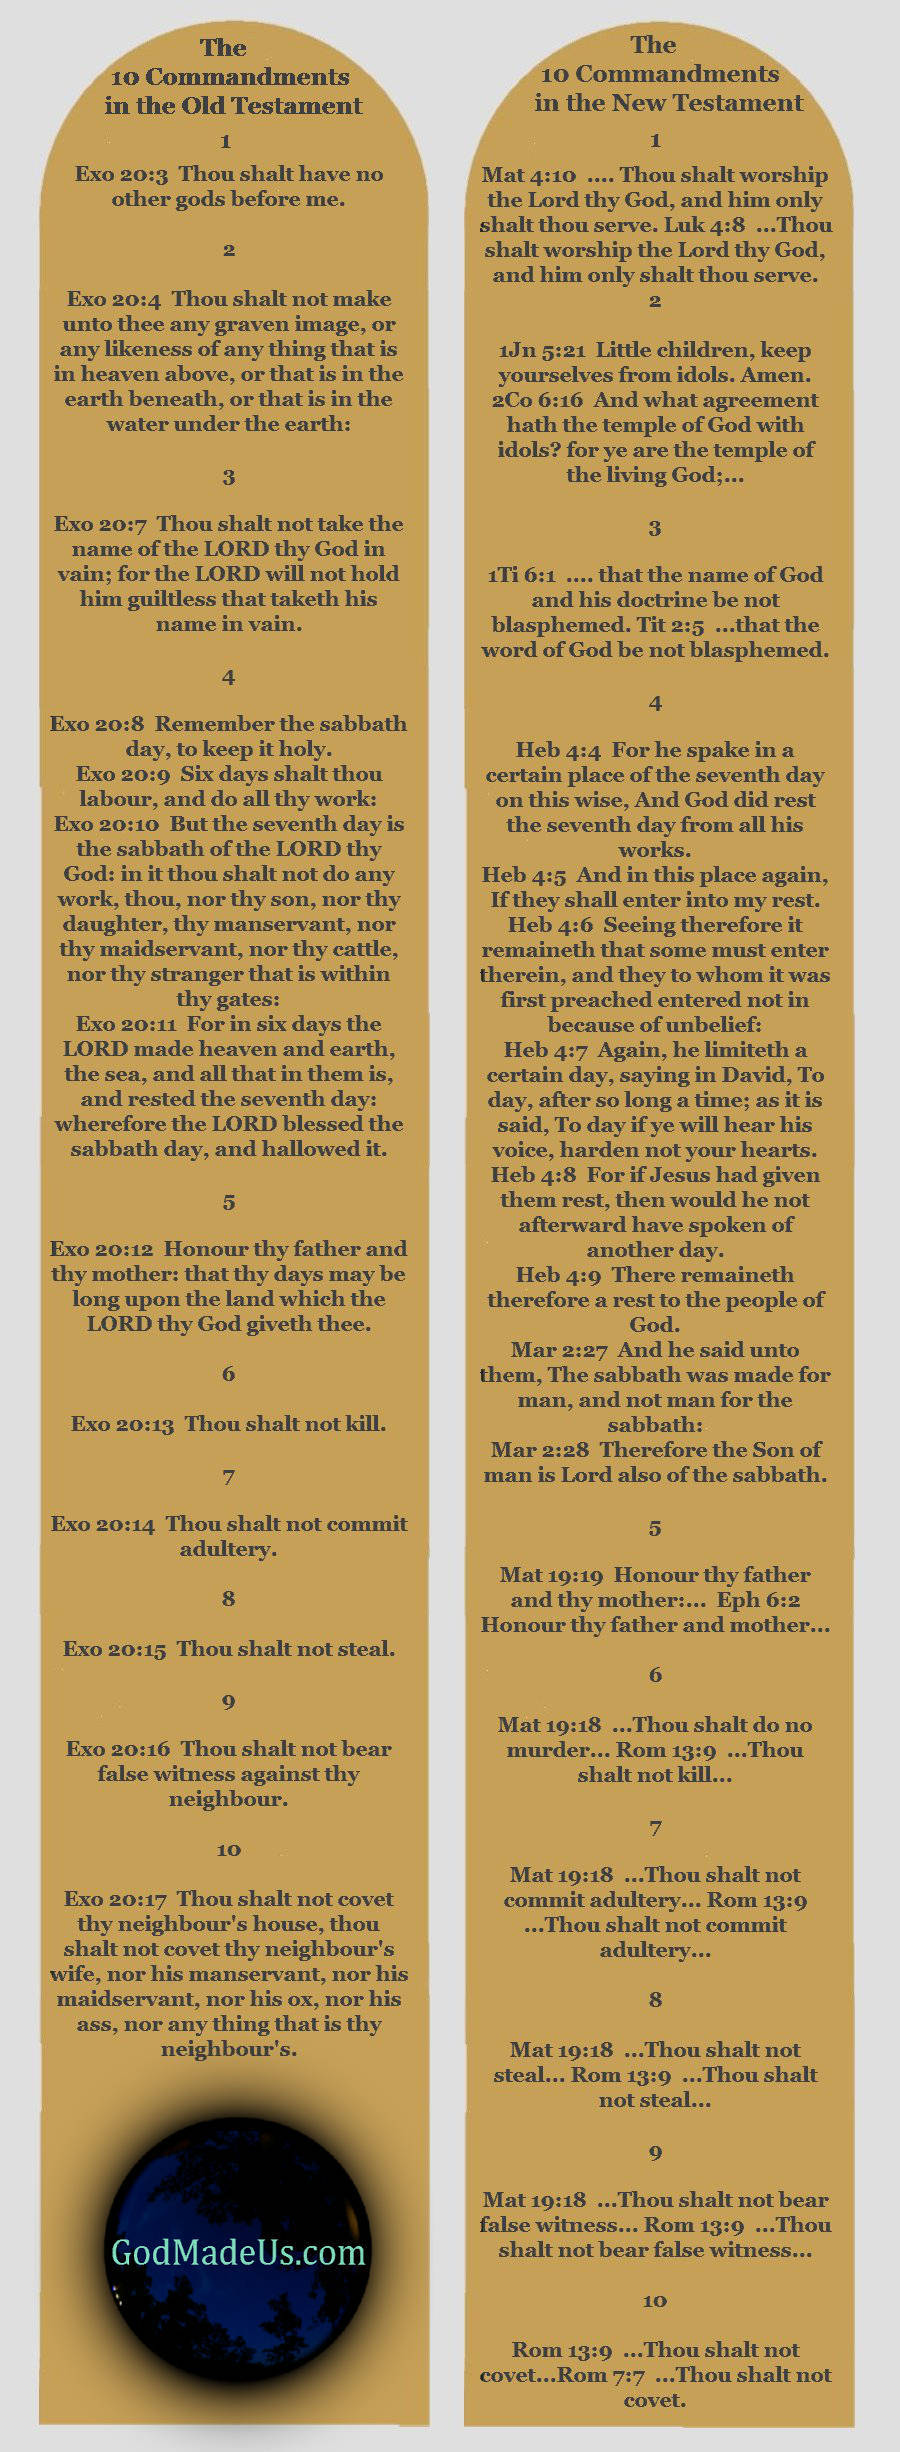 Image showing the verses which depict the 10 commandments in both the old and new testaments.